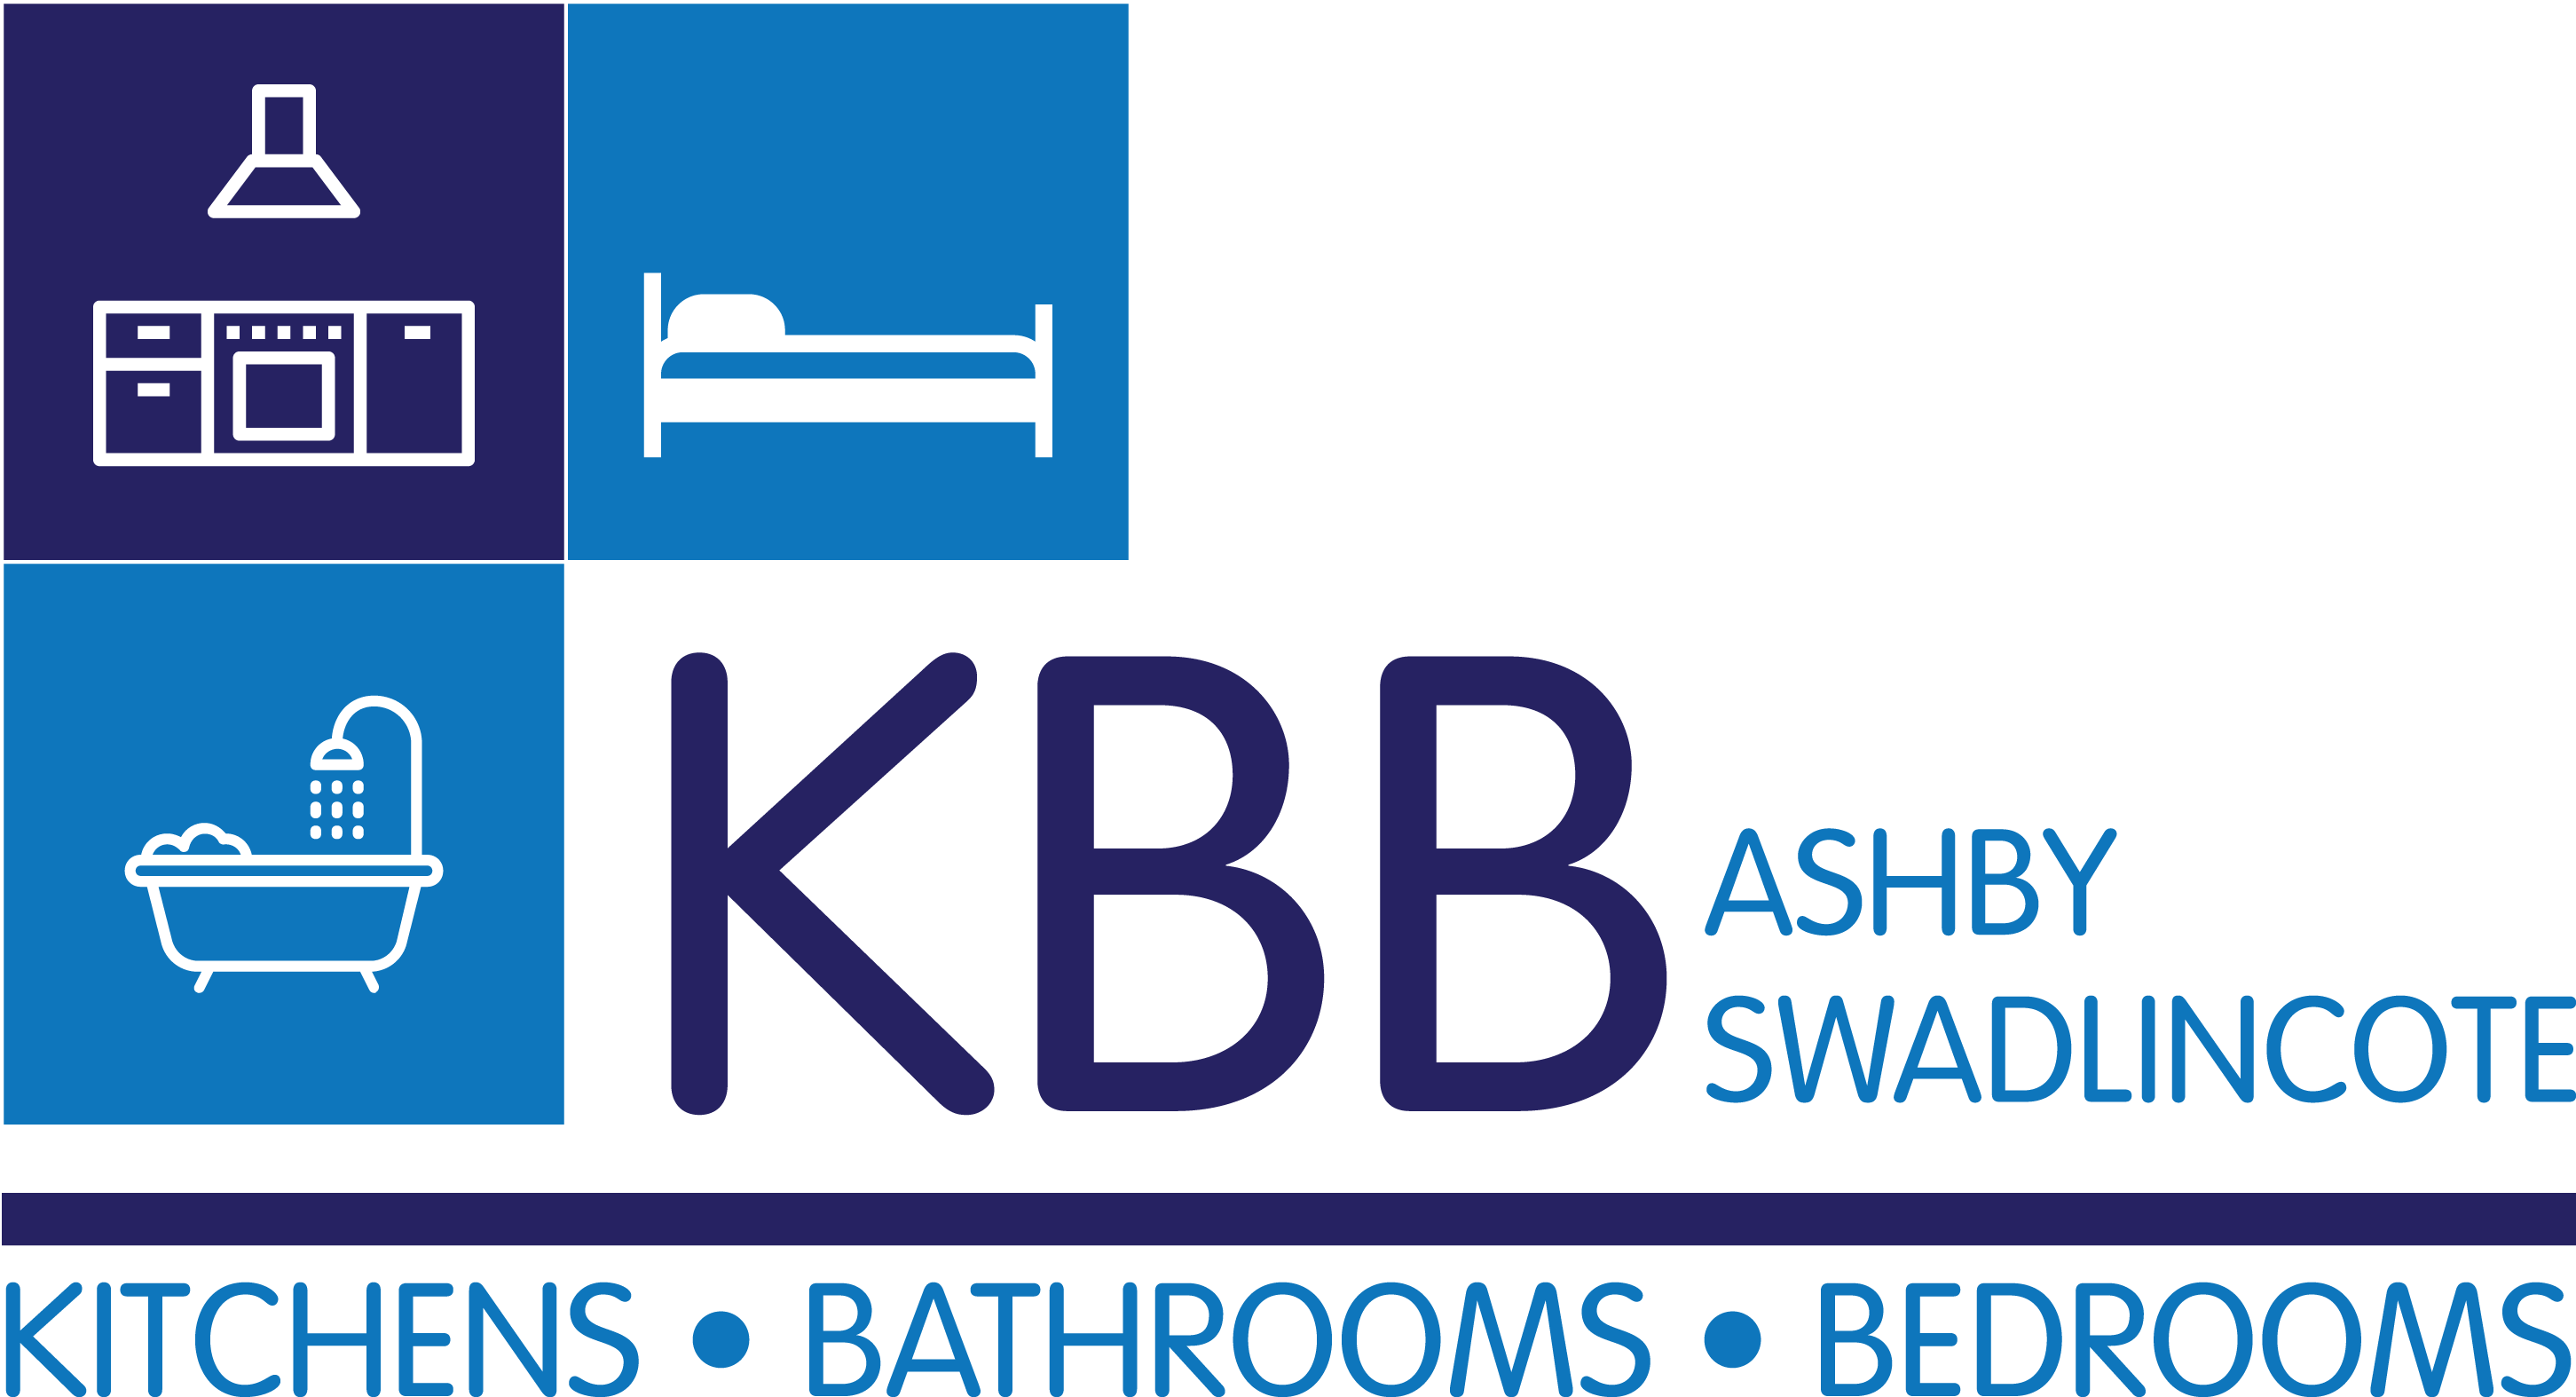 Read Swadlincote and Ashby KBB Reviews